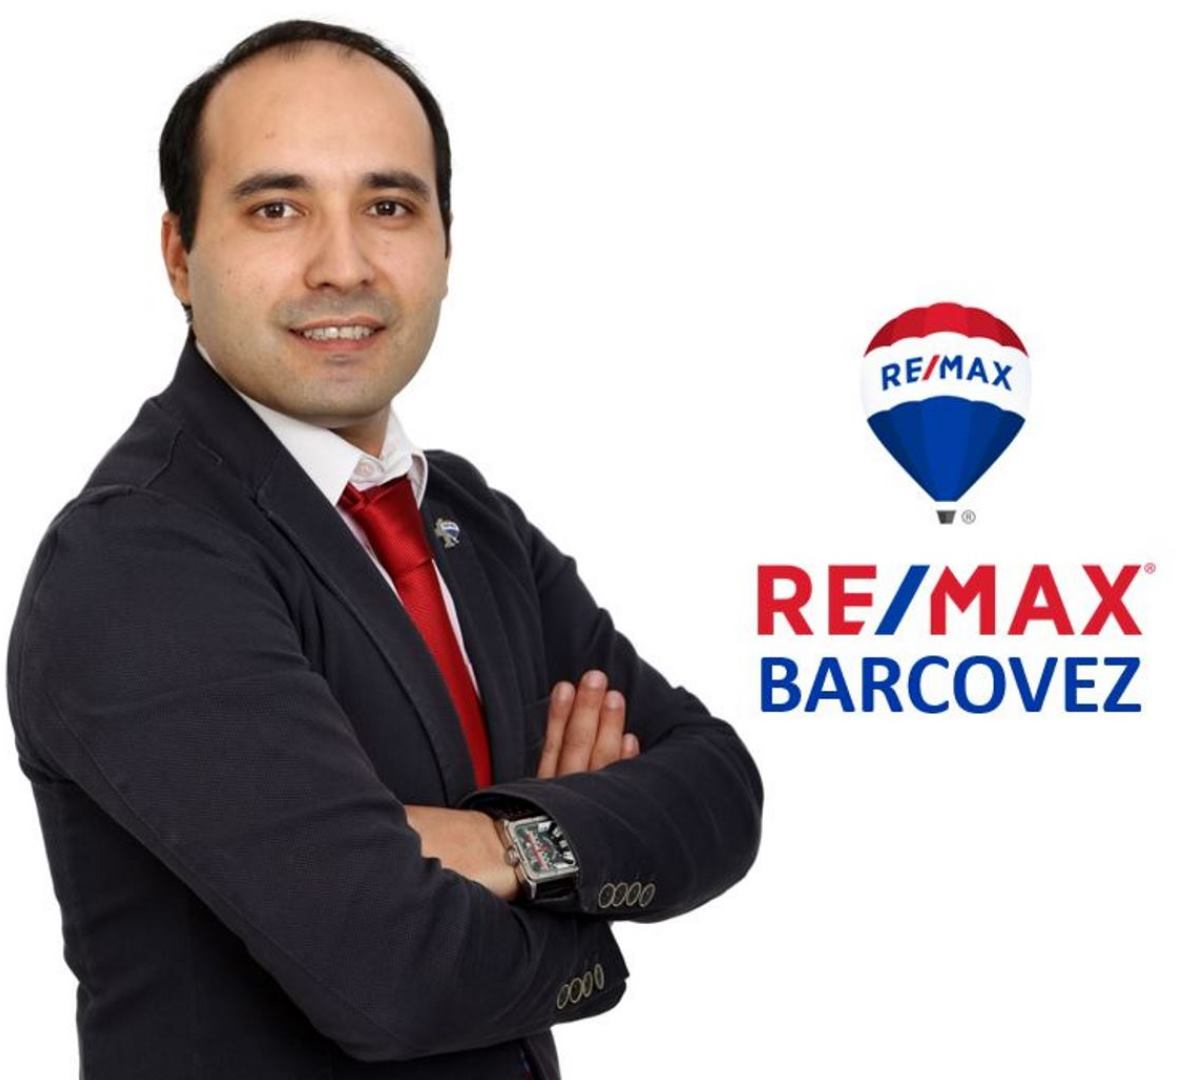 Remax Barcovez